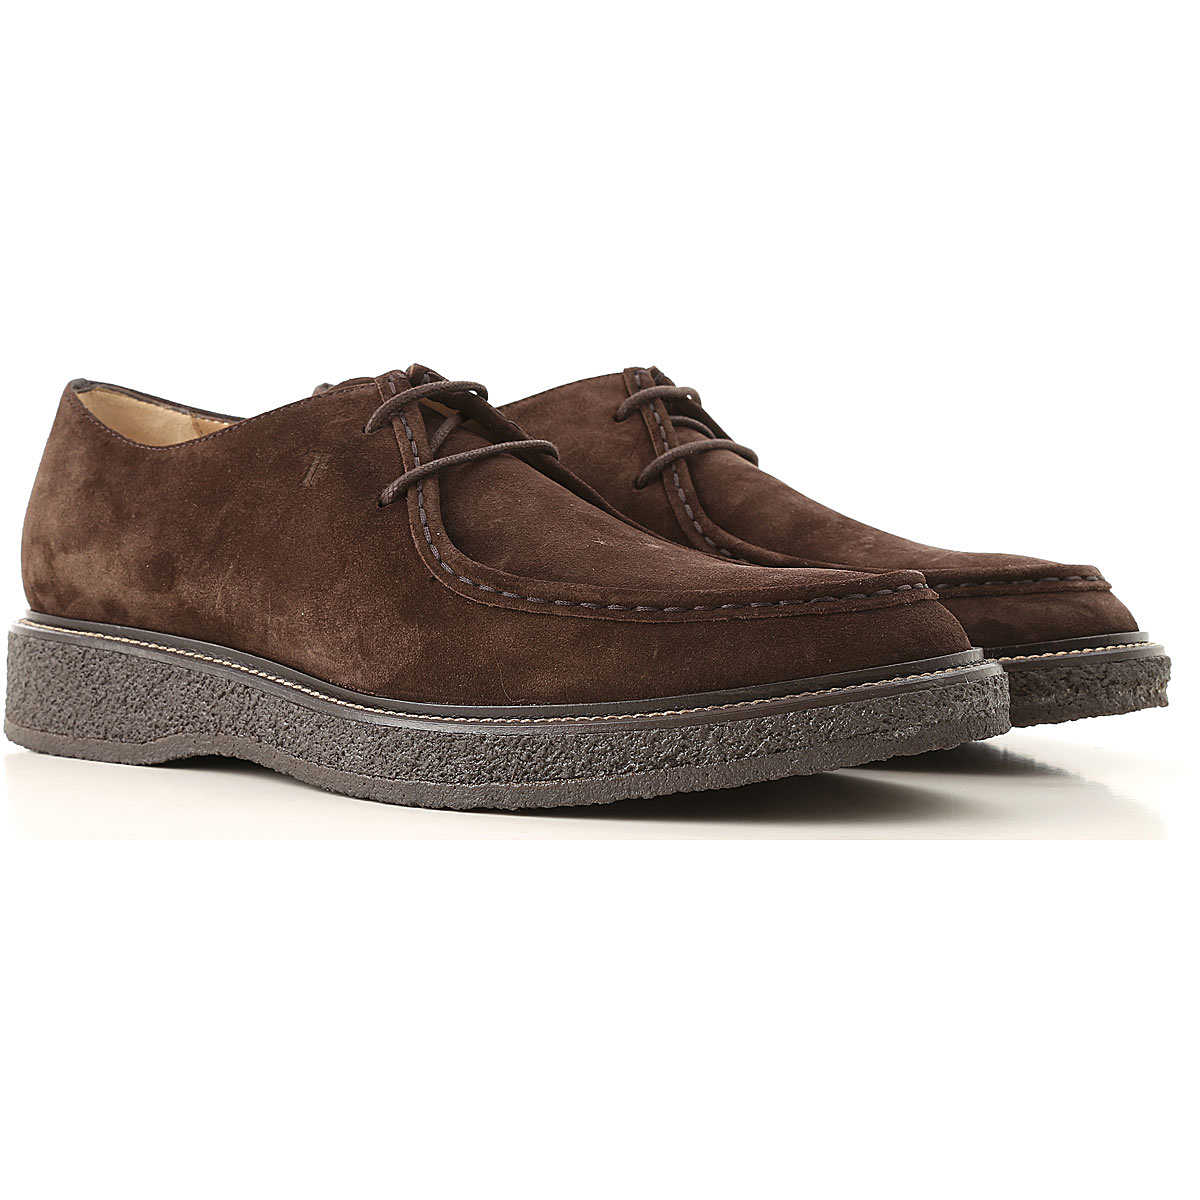 Tods Oxford Shoes for Men On Sale in Outlet Brown - GOOFASH